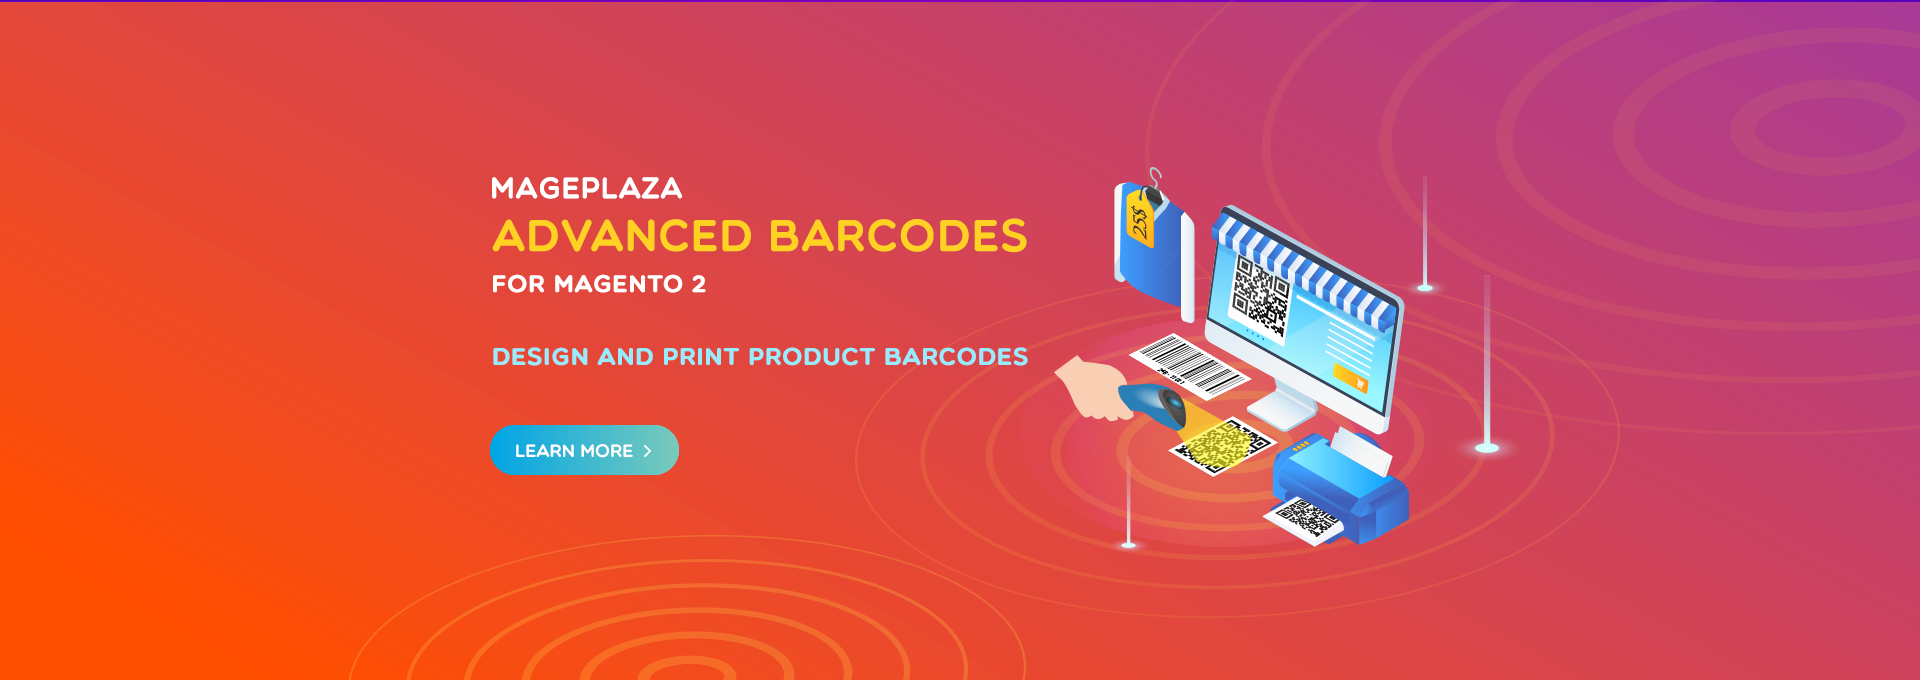 How to generate Barcode for Magento 2 products